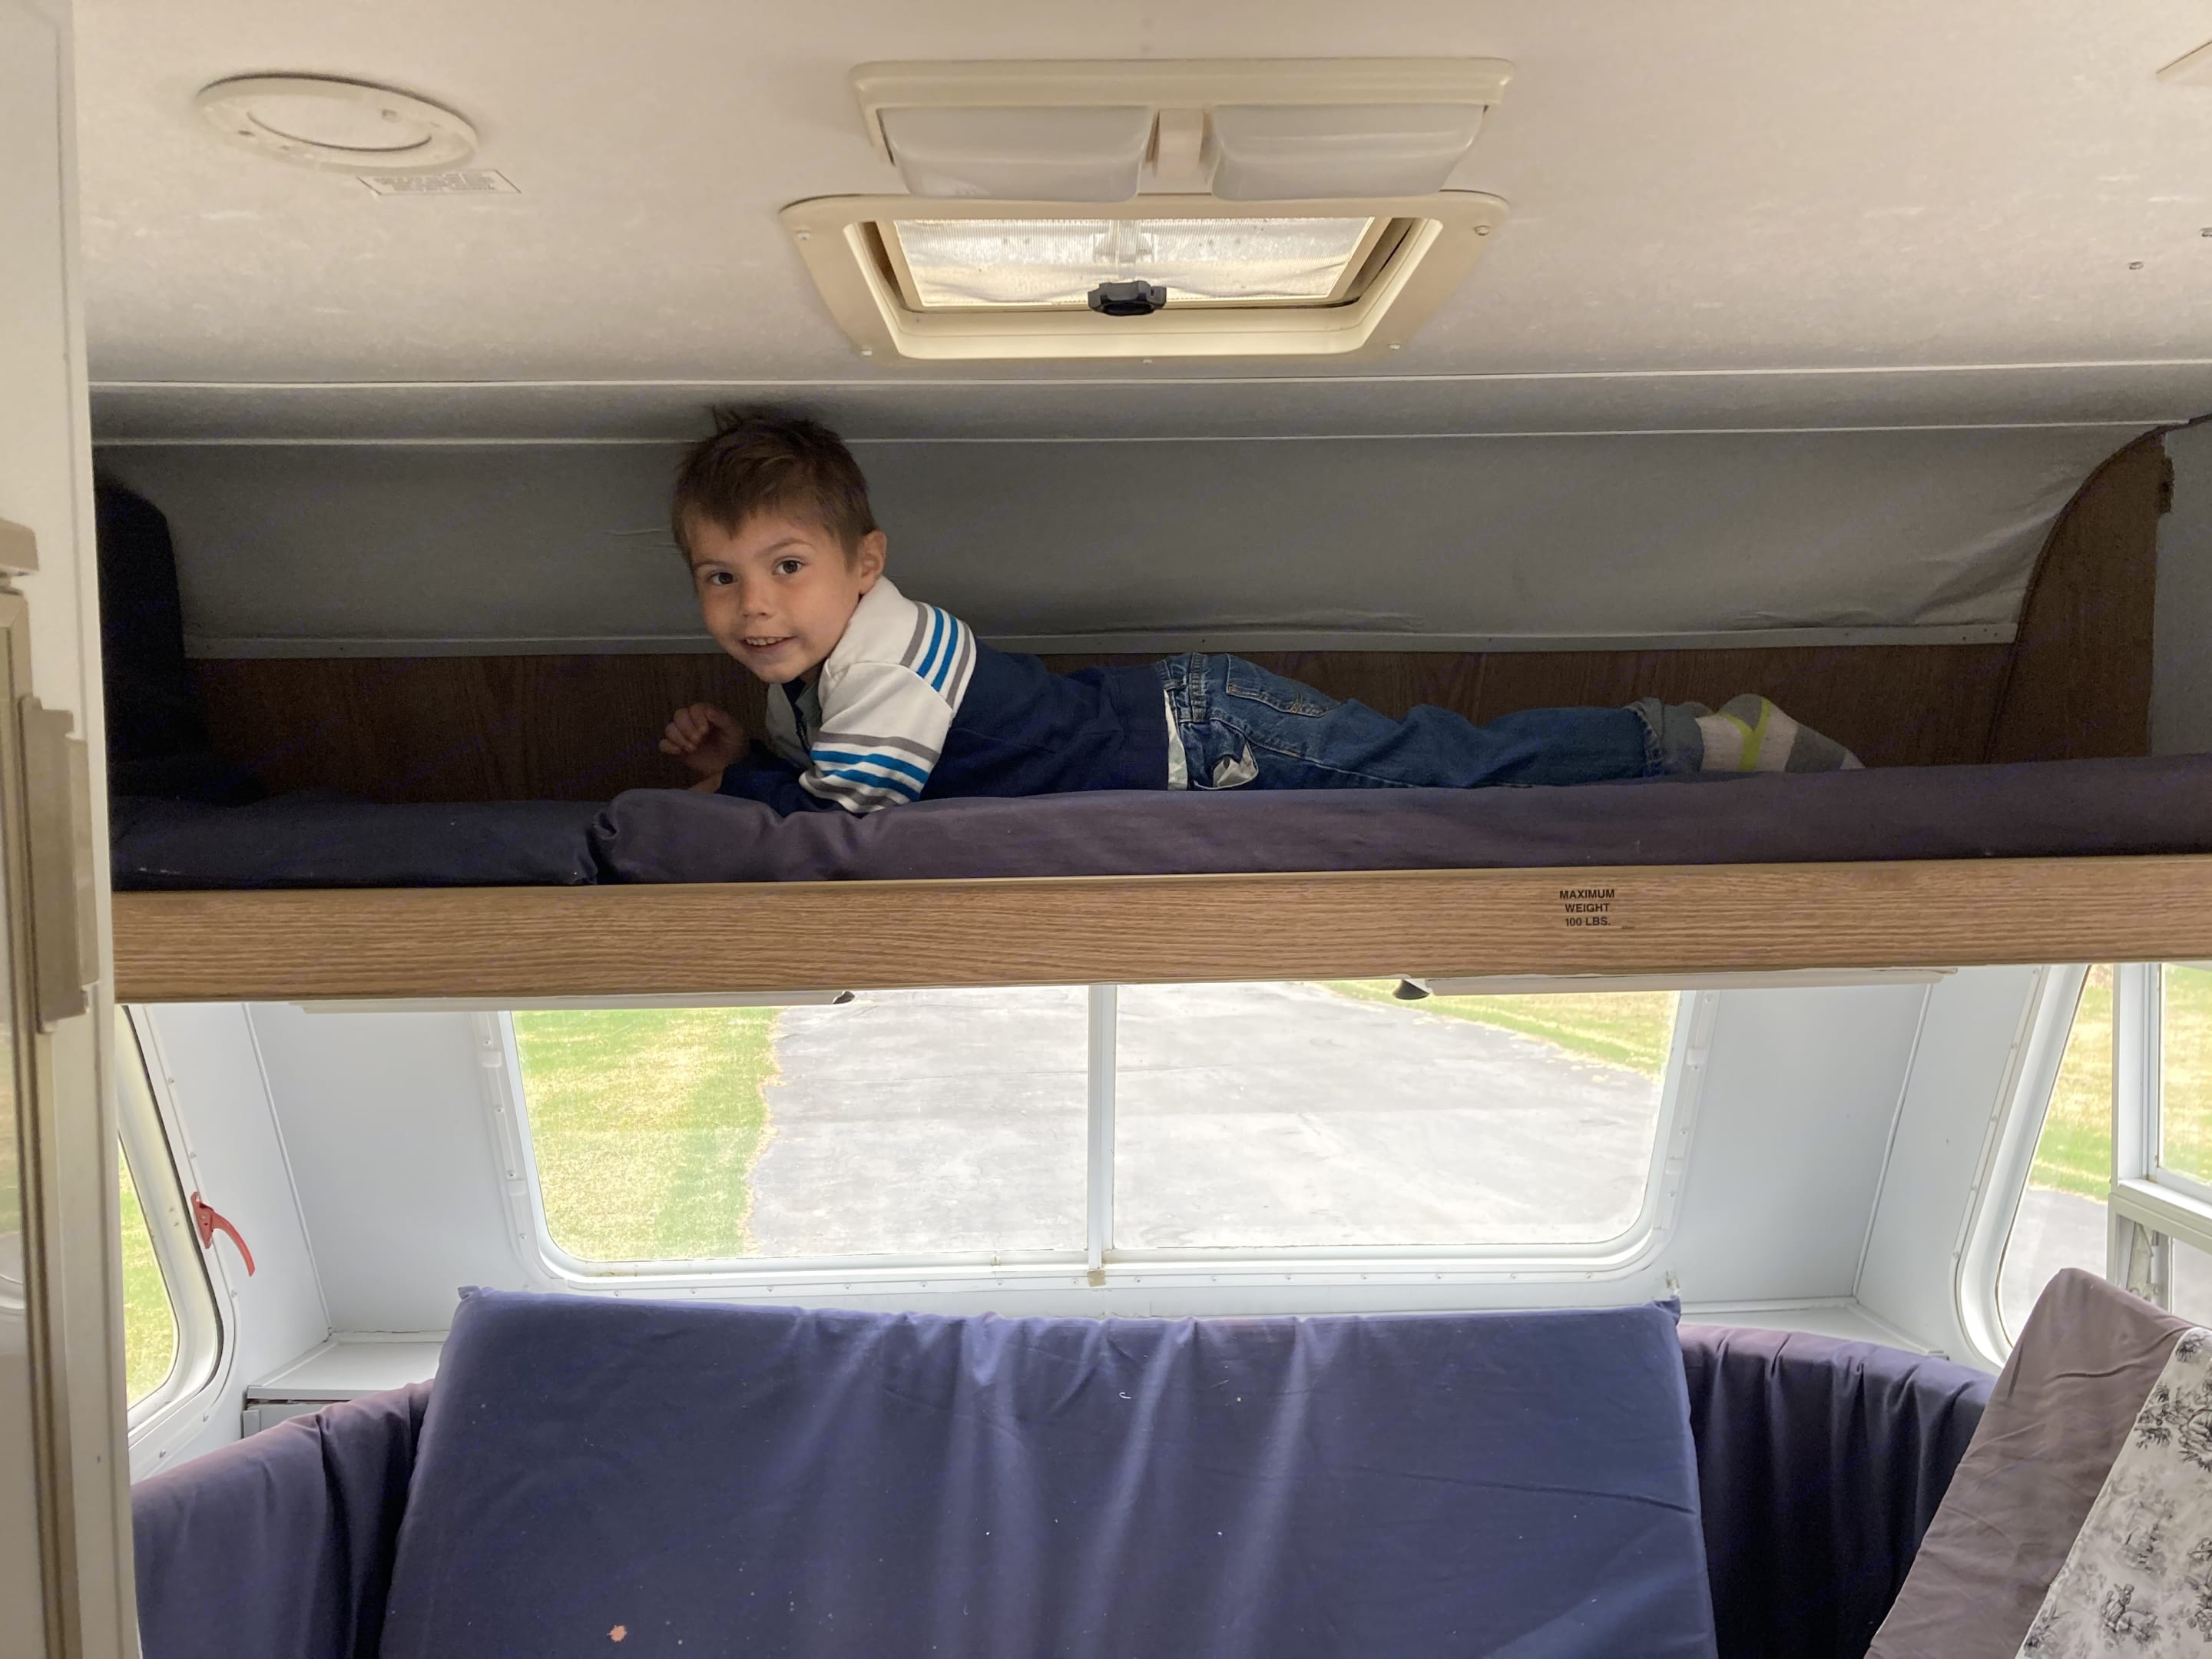 100 lb MAX! Very small bunk suitable for a SMALL child. My son it 5 and he loves it up there! . Aerolite Travel Trailer 1996